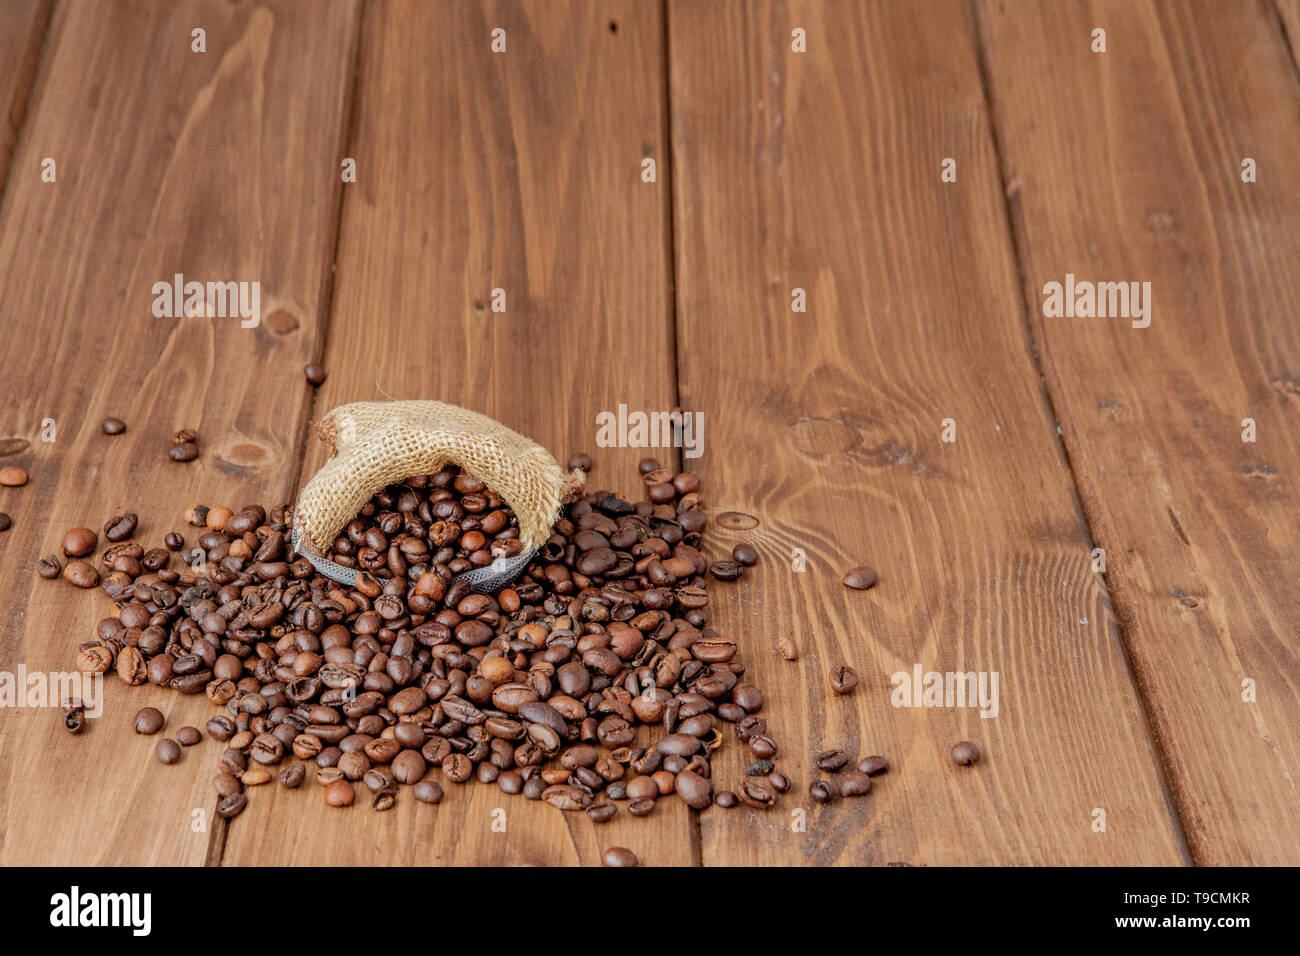 Fresh roasted coffee beans falling out the sack on the wooden surface. Brown coffee beans scattered from bag on the table. - Stock Image